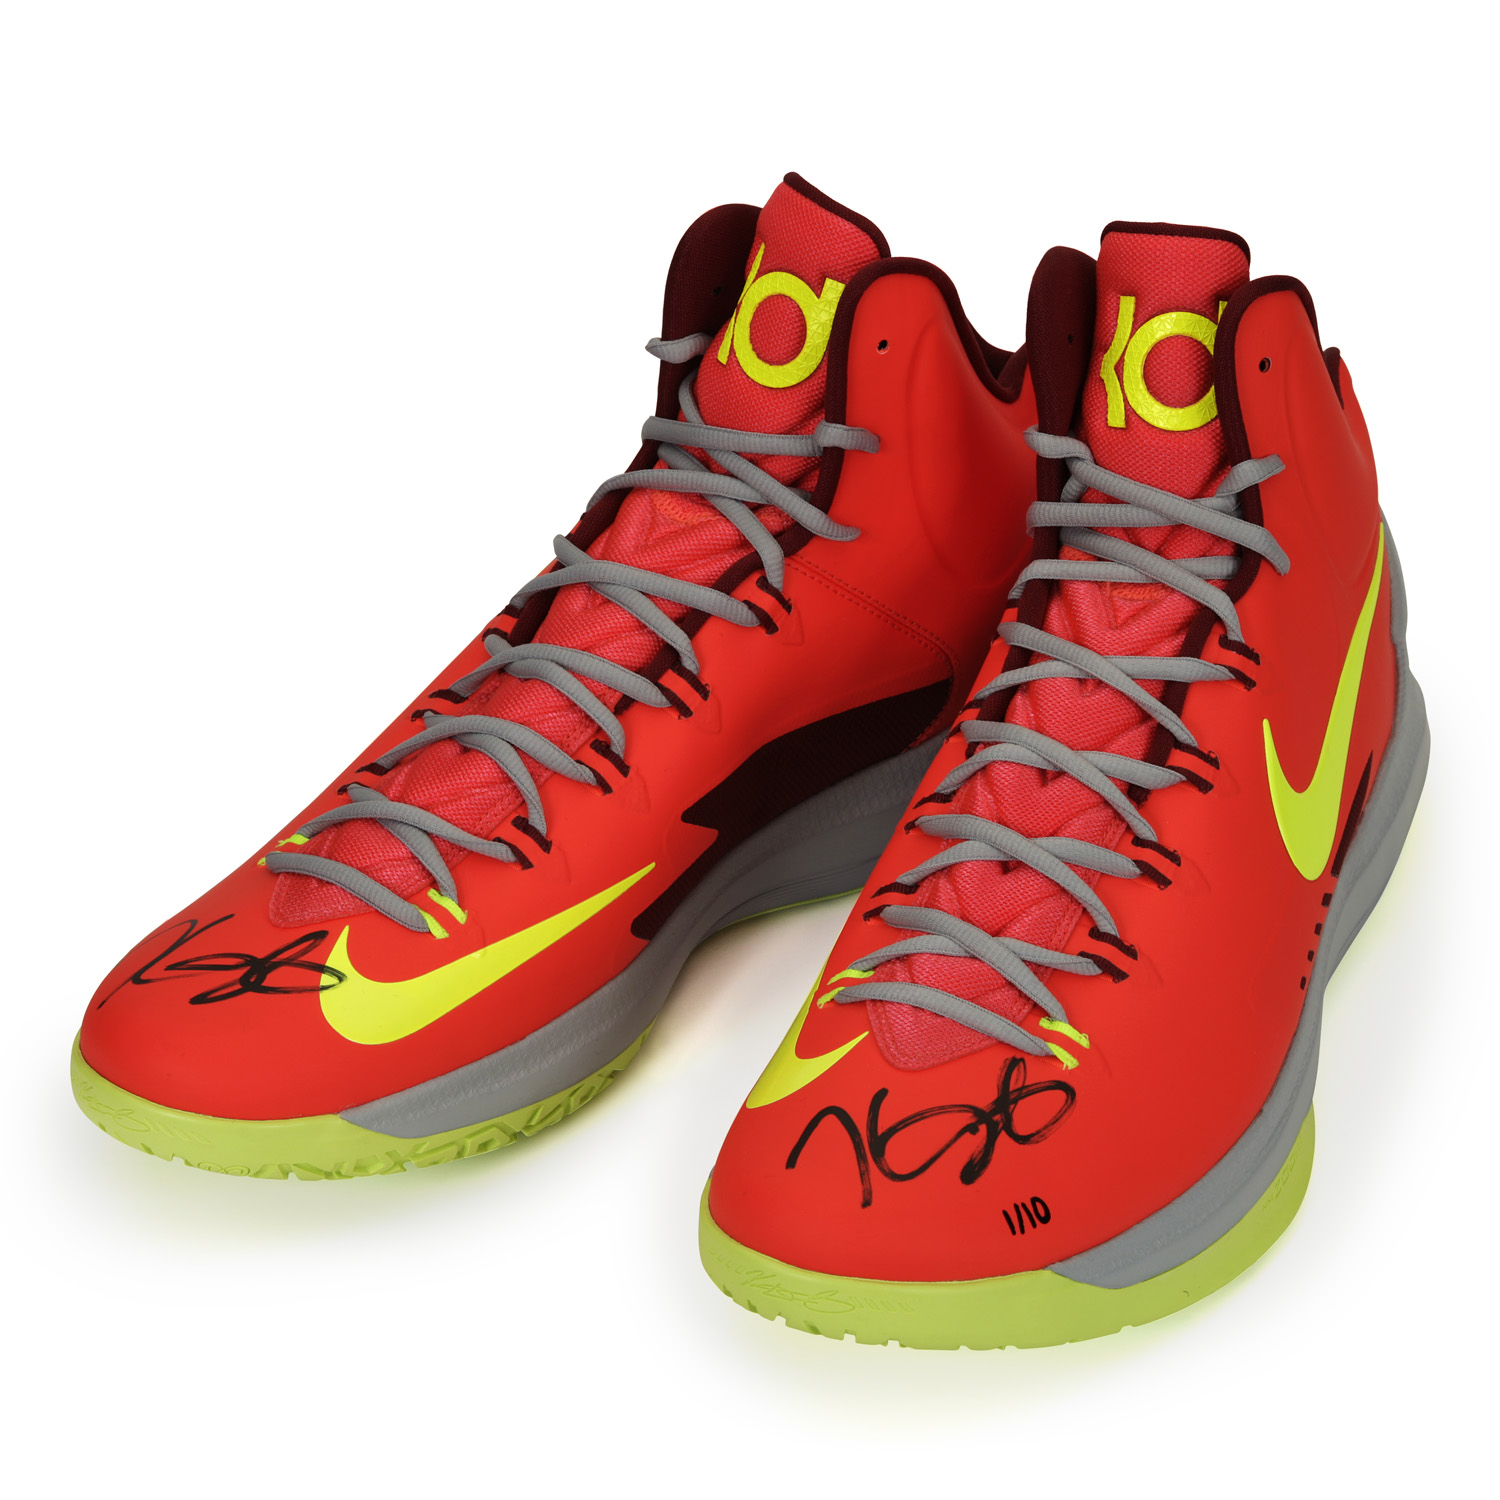 8355641daa18 Kevin Durant Autographed Zoom V Crimson Shoes ~Limited to 10~